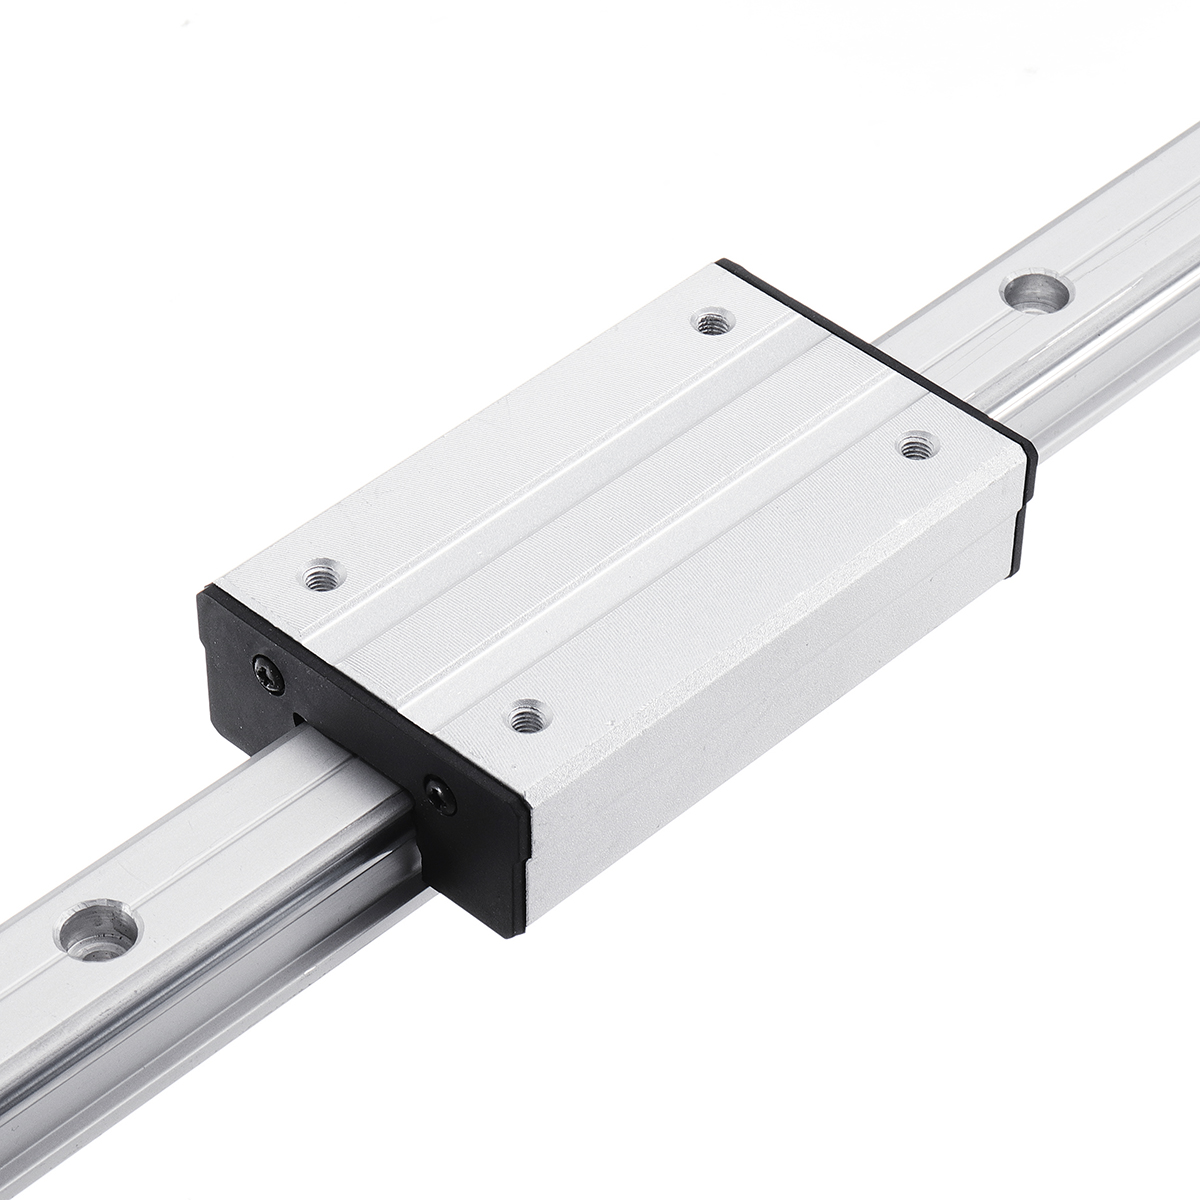 Machifit External Dual-axis LGD6-500L Linear Guide with LGB6-60L 4UU LGB6-100L 4UU Slide Block